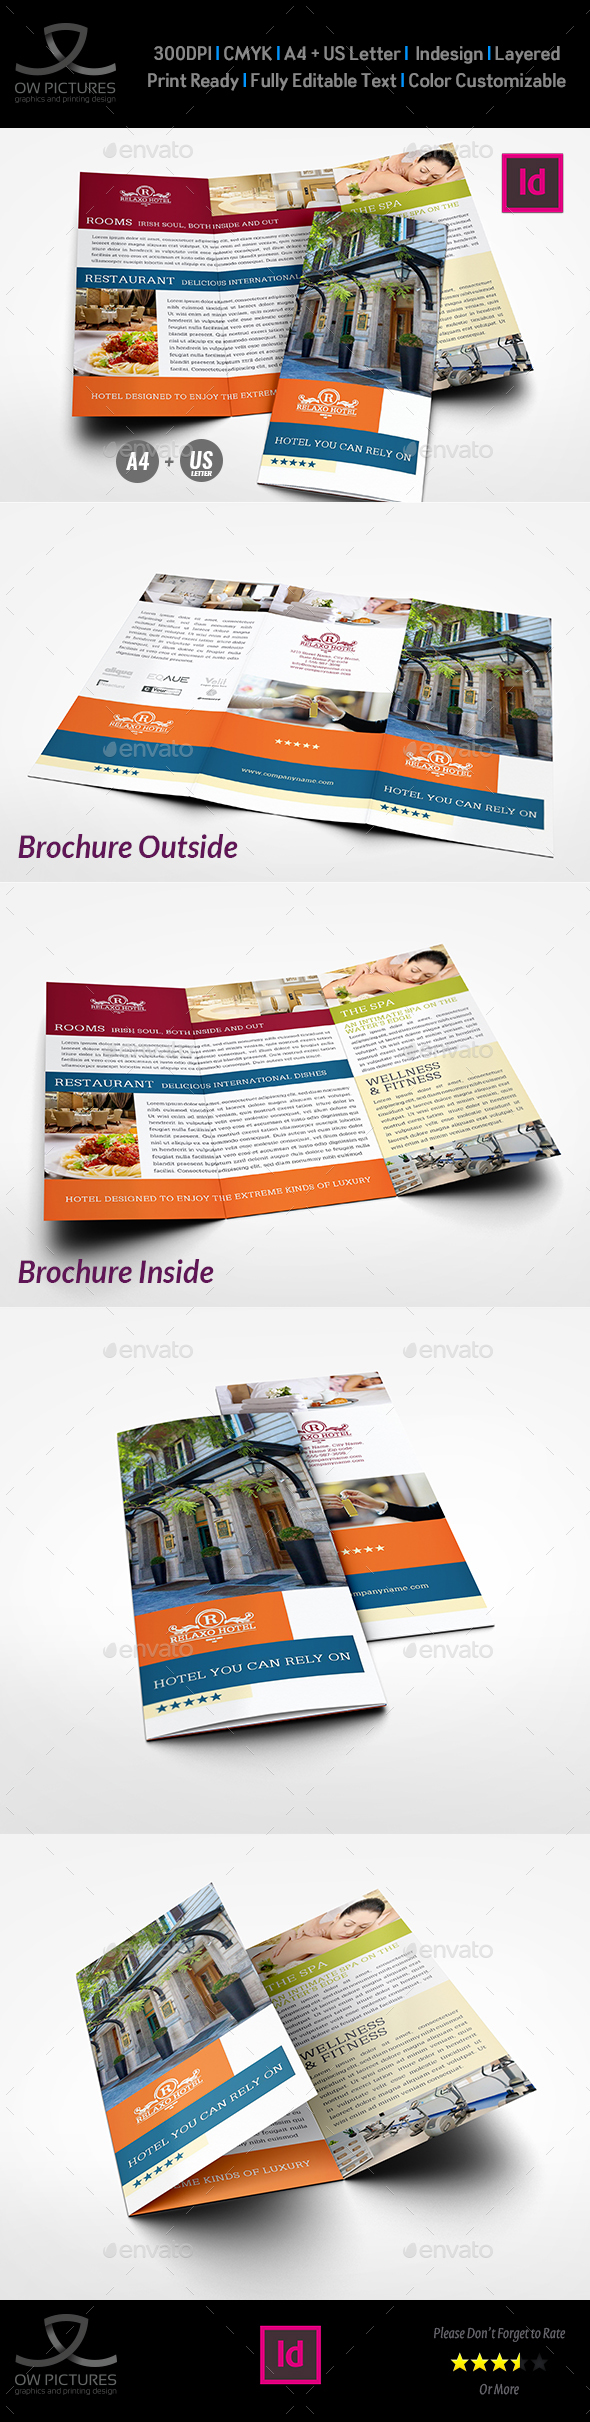 Hotel and Motel Tri-Fold Brochure Template Vol.2 - Brochures Print Templates